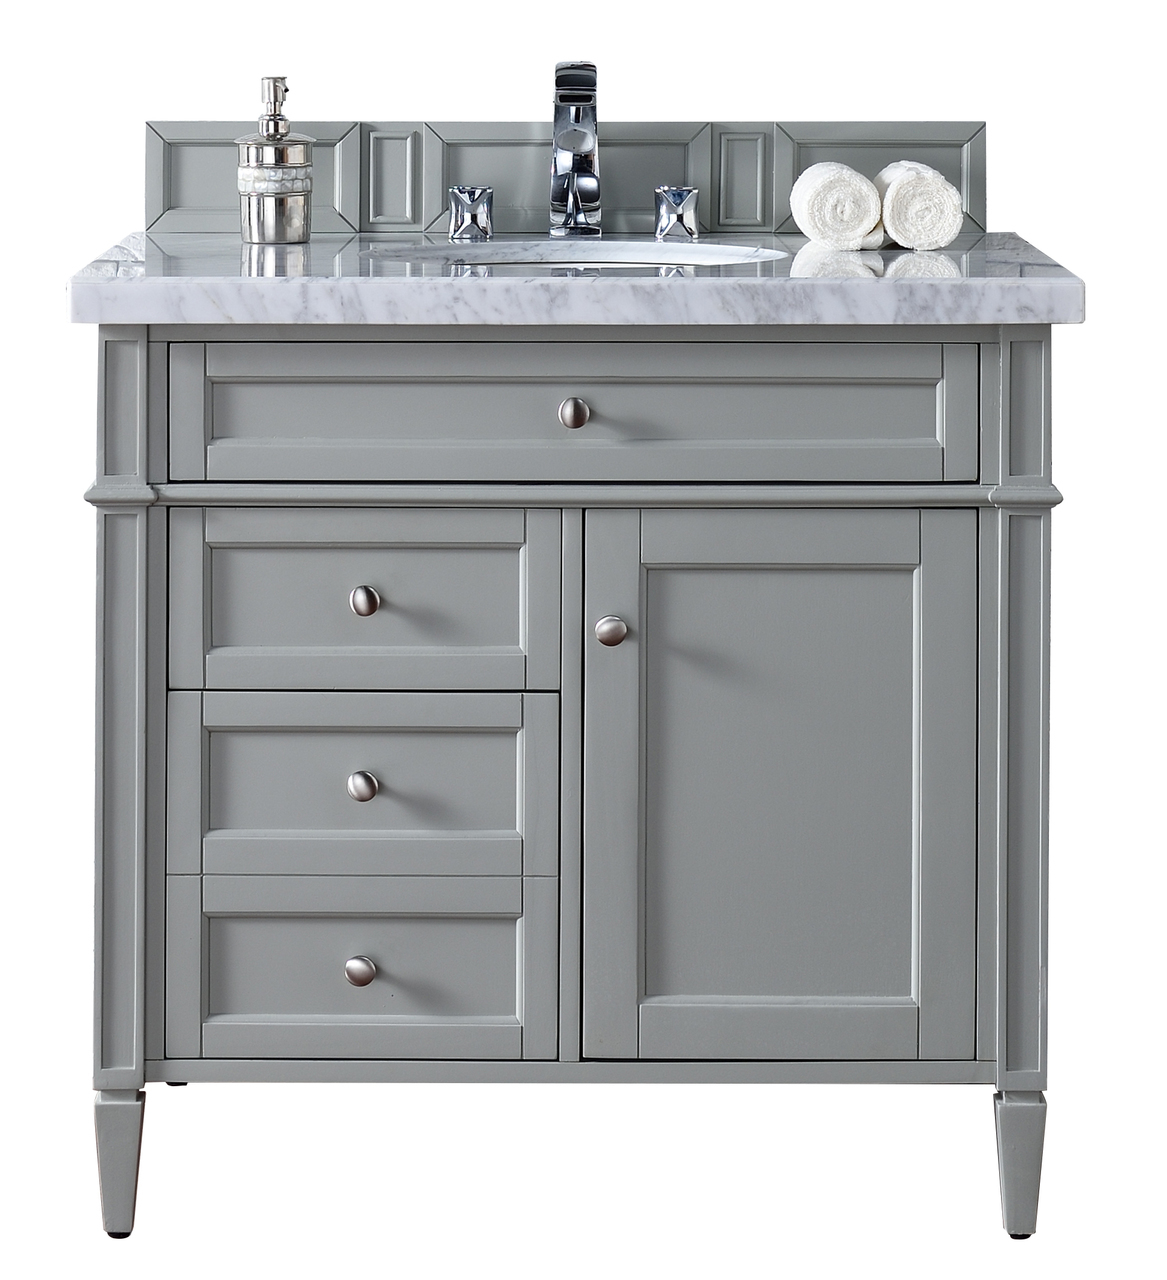 James martin brittany collection 36 single vanity urban gray for Single bathroom vanity